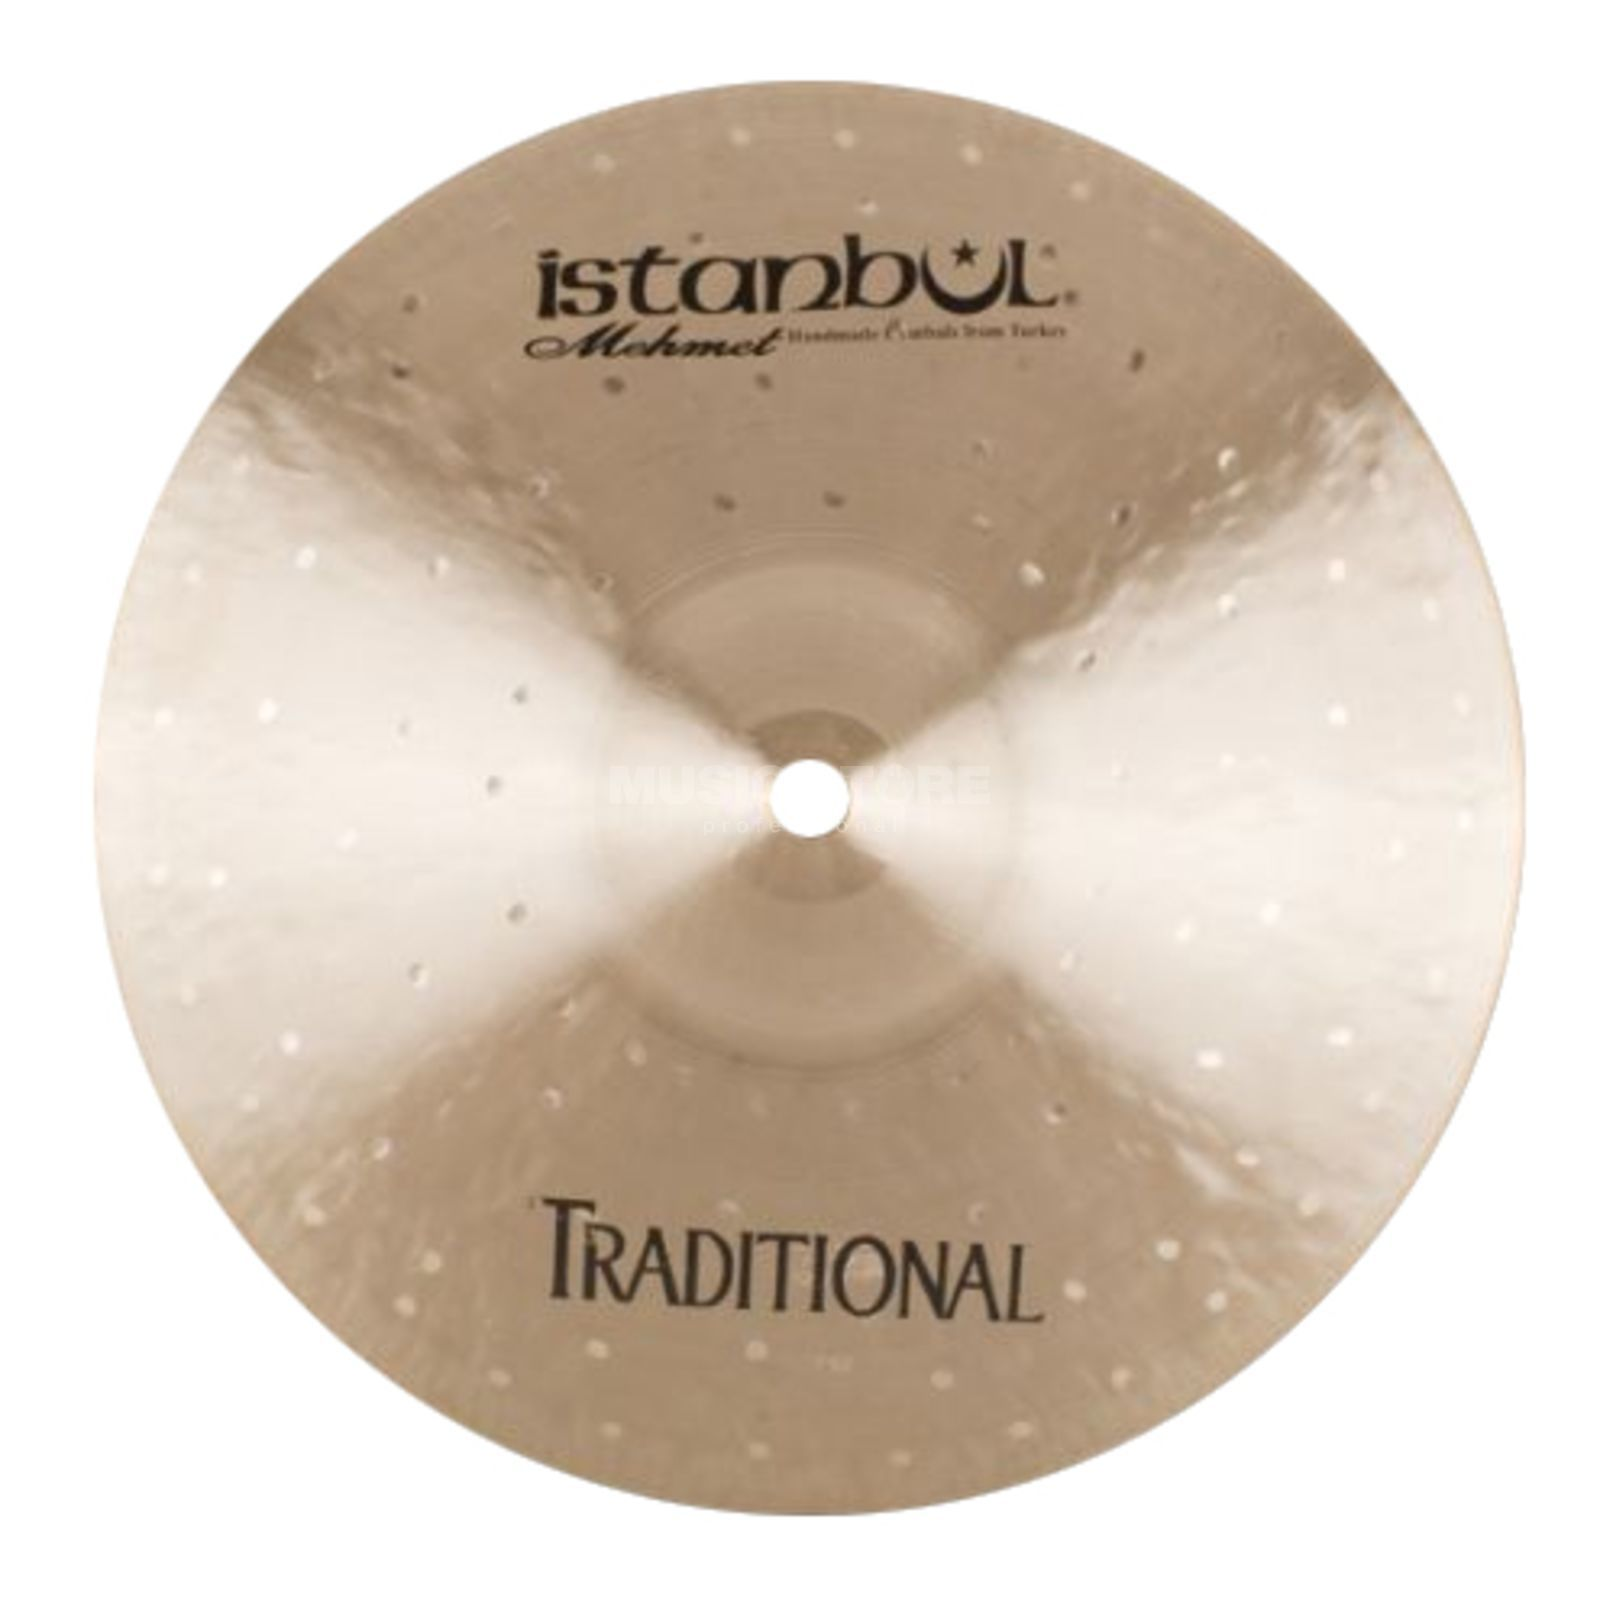 "Istanbul Traditional Splash 10"", SP 11 Product Image"